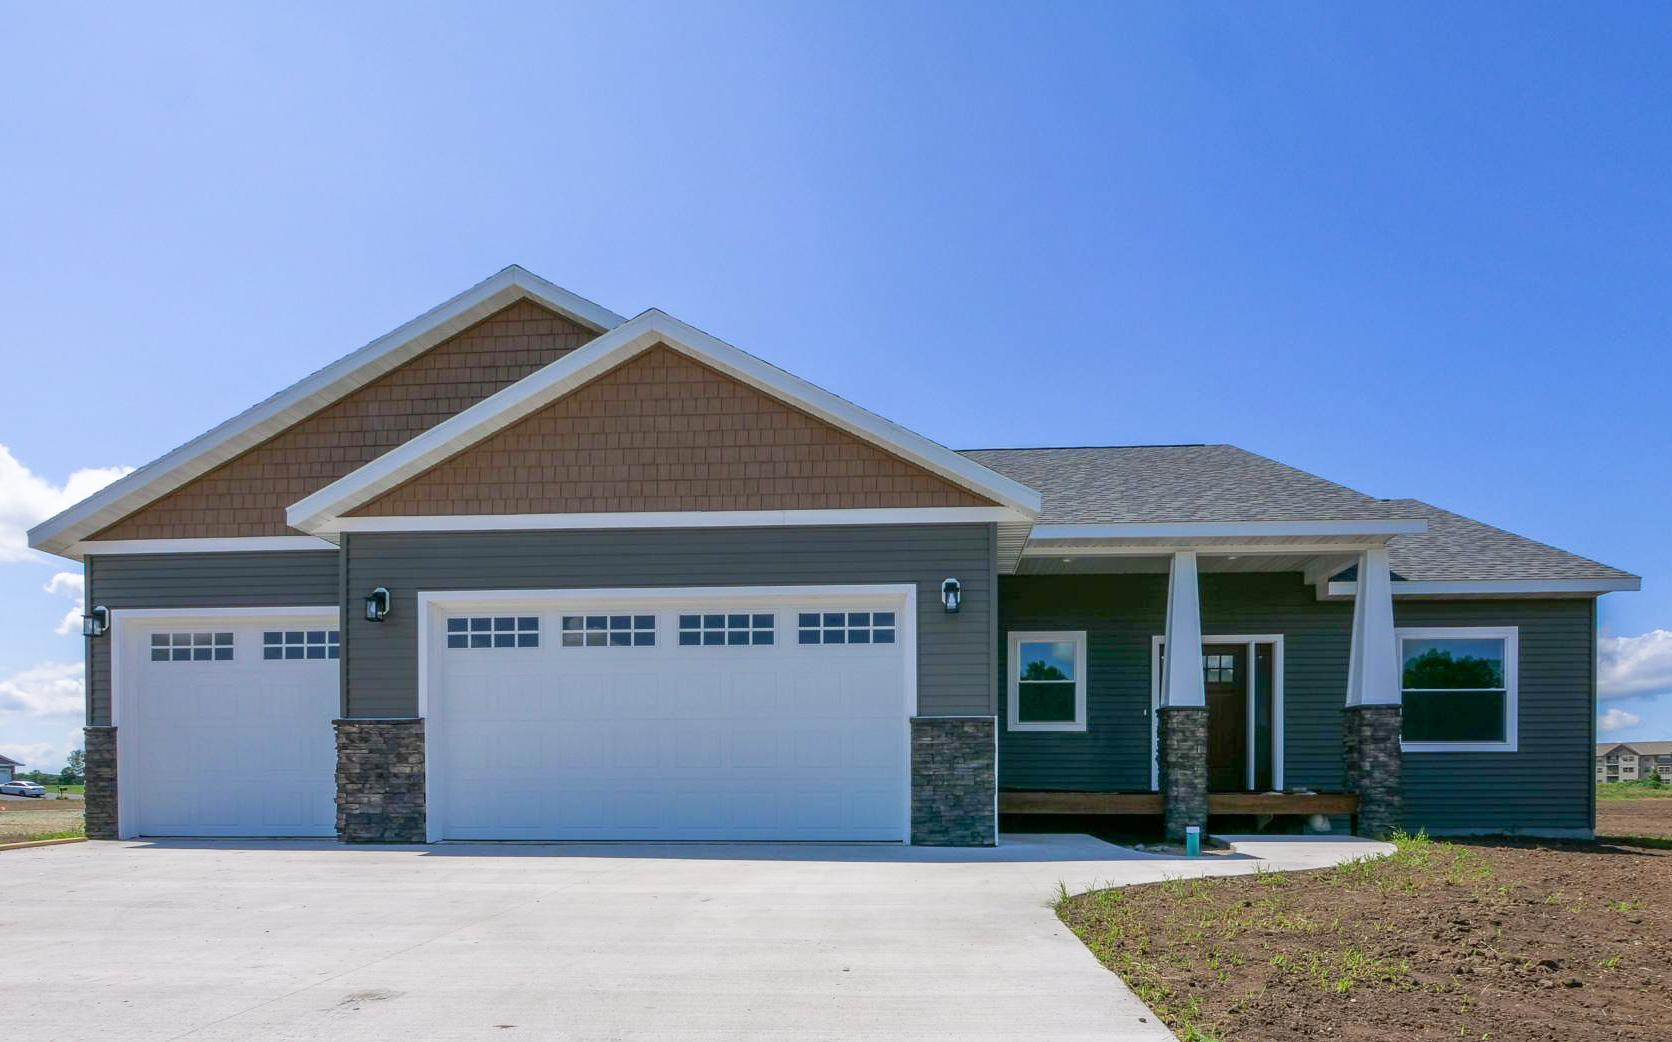 Brand new construction in the desirable Burgen Sunrise neighborhood. This stunning rambler boasts 5 bedrooms, 3 bathrooms and 2,500+ finished square feet! The main floor is an open concept with an easy flow throughout. The lower level has a spacious family room, two bedrooms and a full bathroom. The grand owner's suite has a spacious closet and a stunning en suite bathroom. The main living area draws attention with its beautiful windows that bring in the sunsets inside the entire space. You will not want to miss this beautiful home.